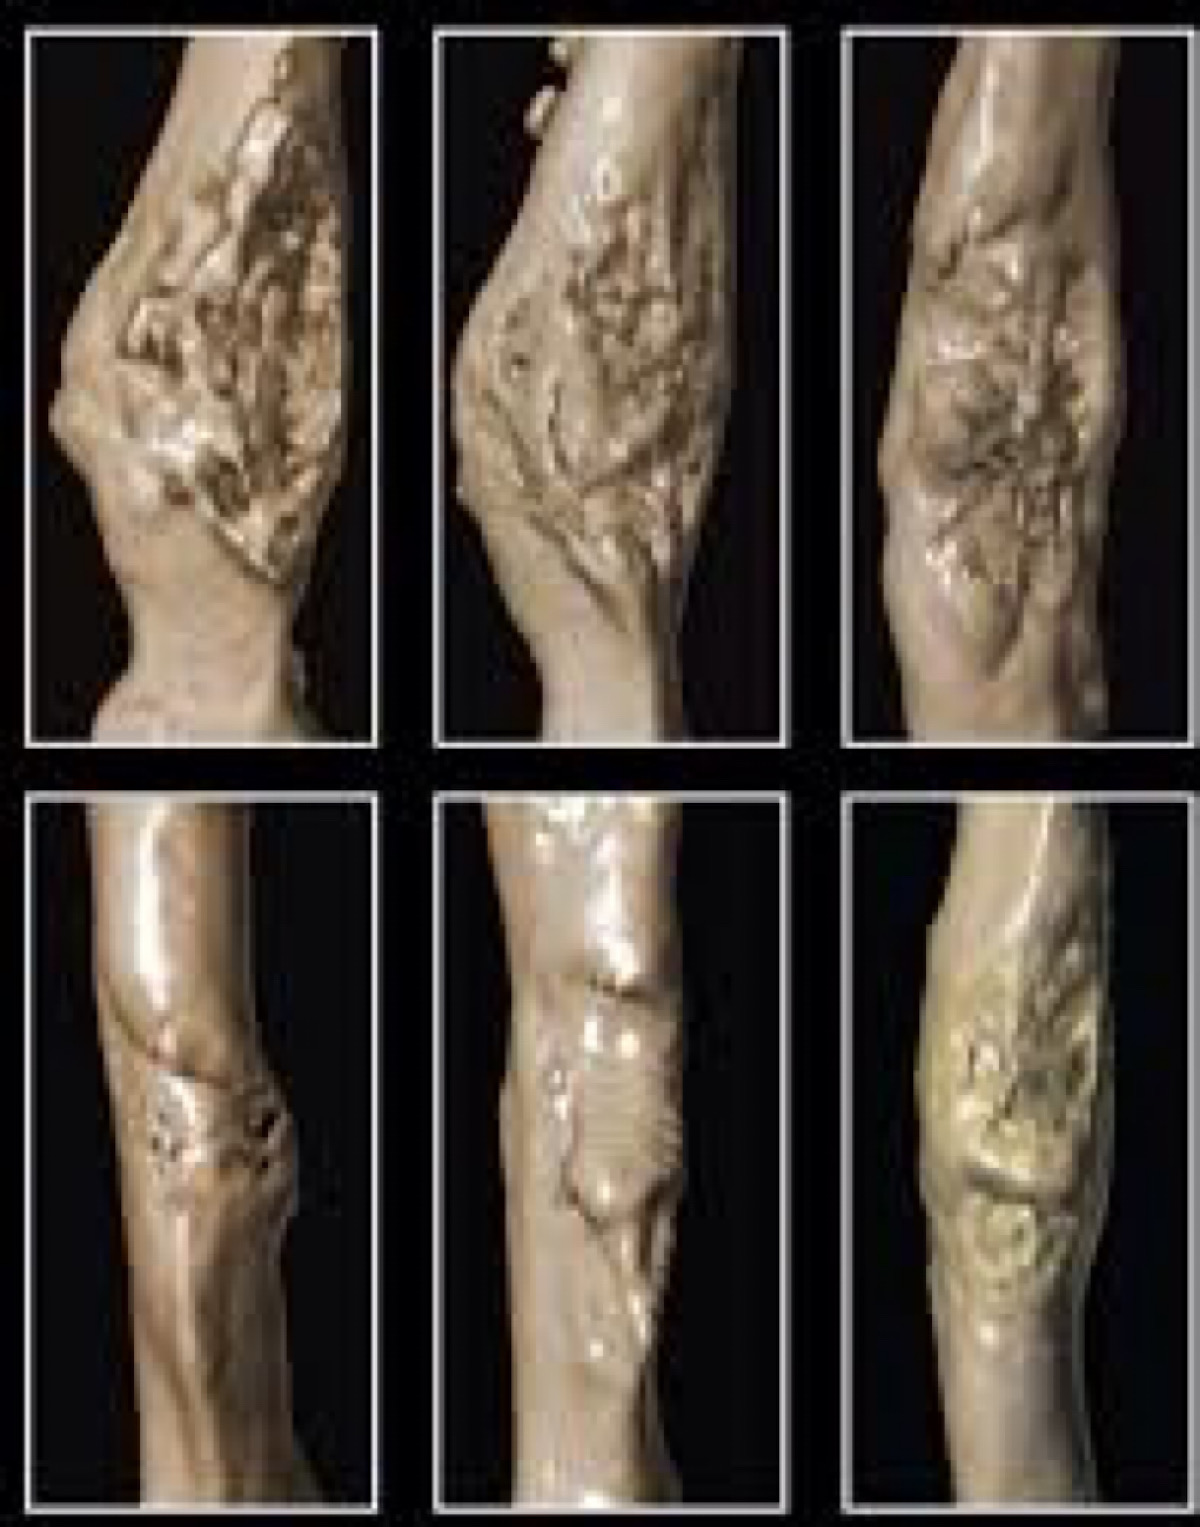 Scientists Use Nanotechnology To Detect Bone-Healing Stem Cells